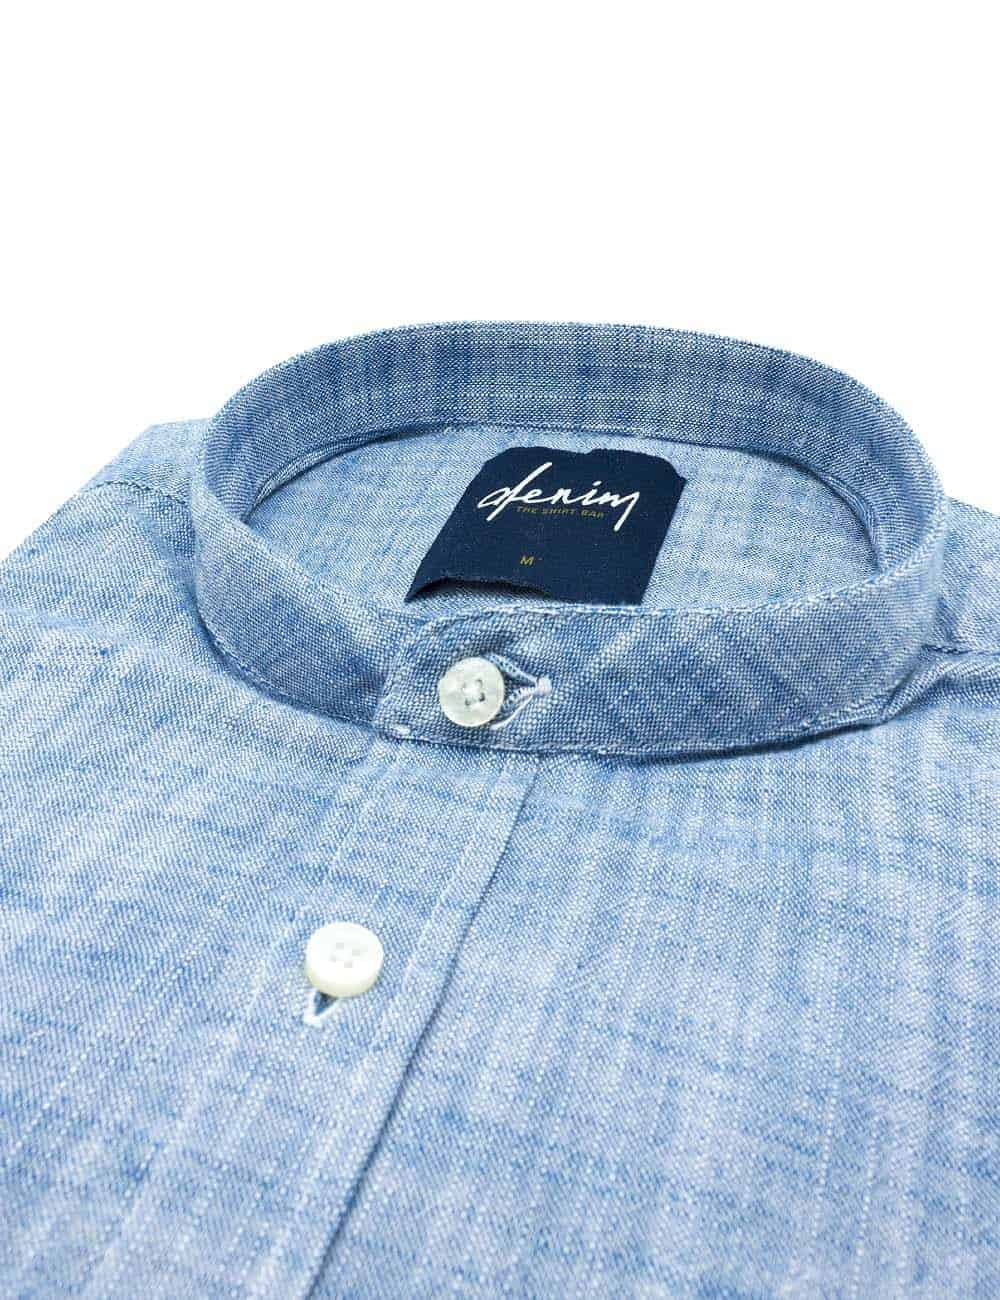 RF Solid Blue Mandarin Collar Denim Collection 100% Cotton Long Sleeve Single Cuff Shirt RF11B2.7